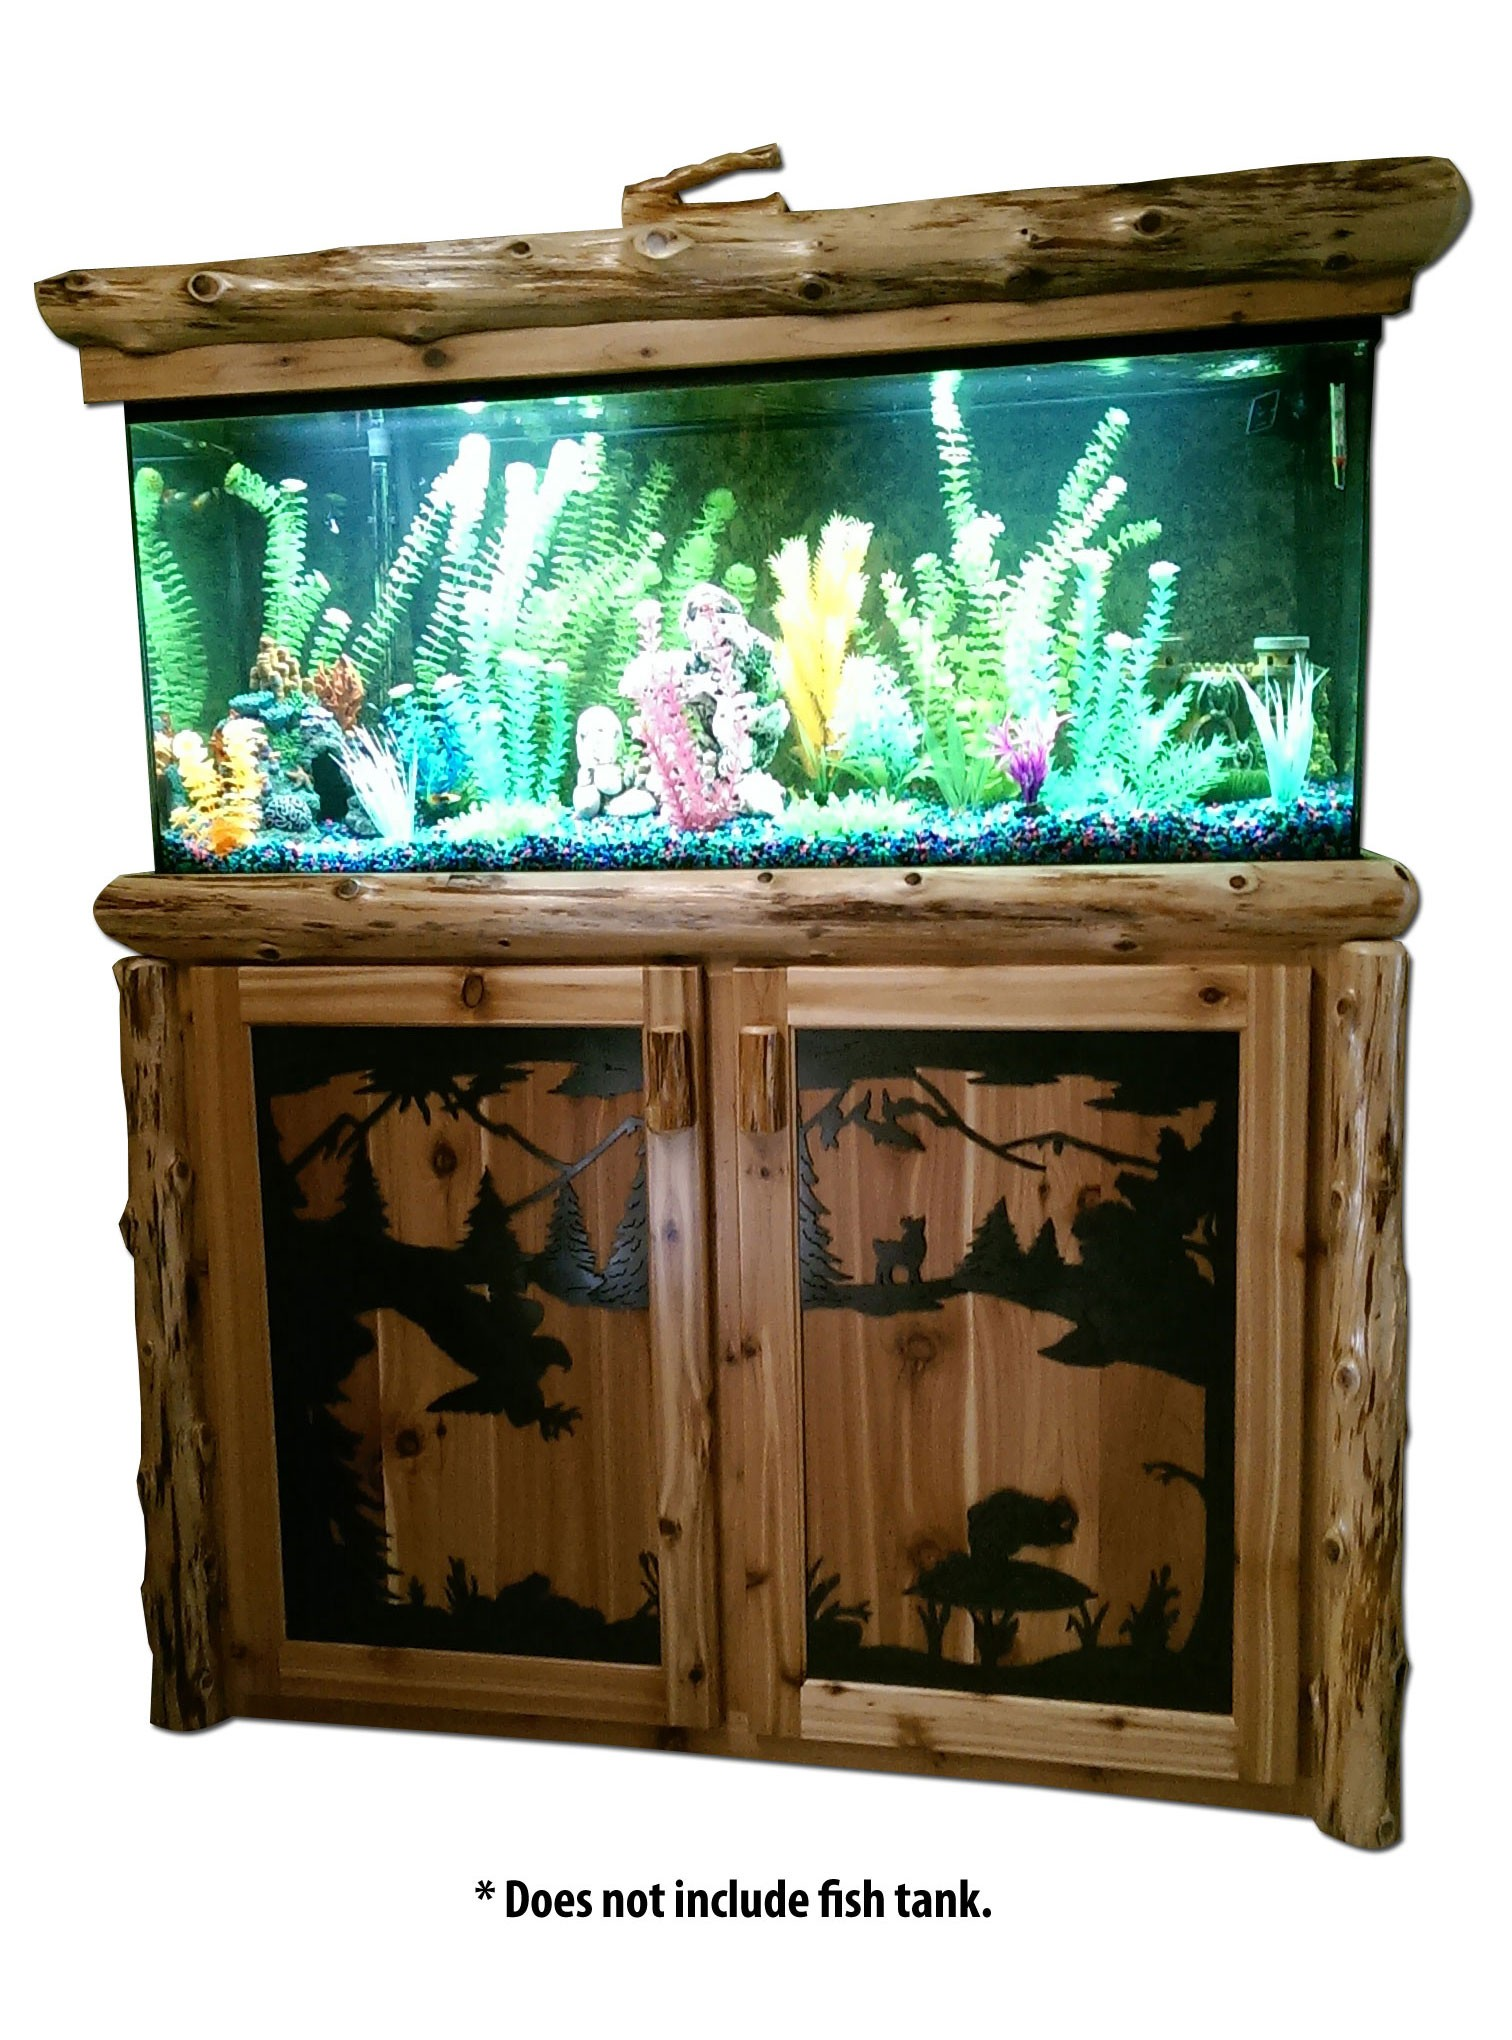 Log fish tank stand cabinet white cedar barnwood for 55 gallon fish tank stand